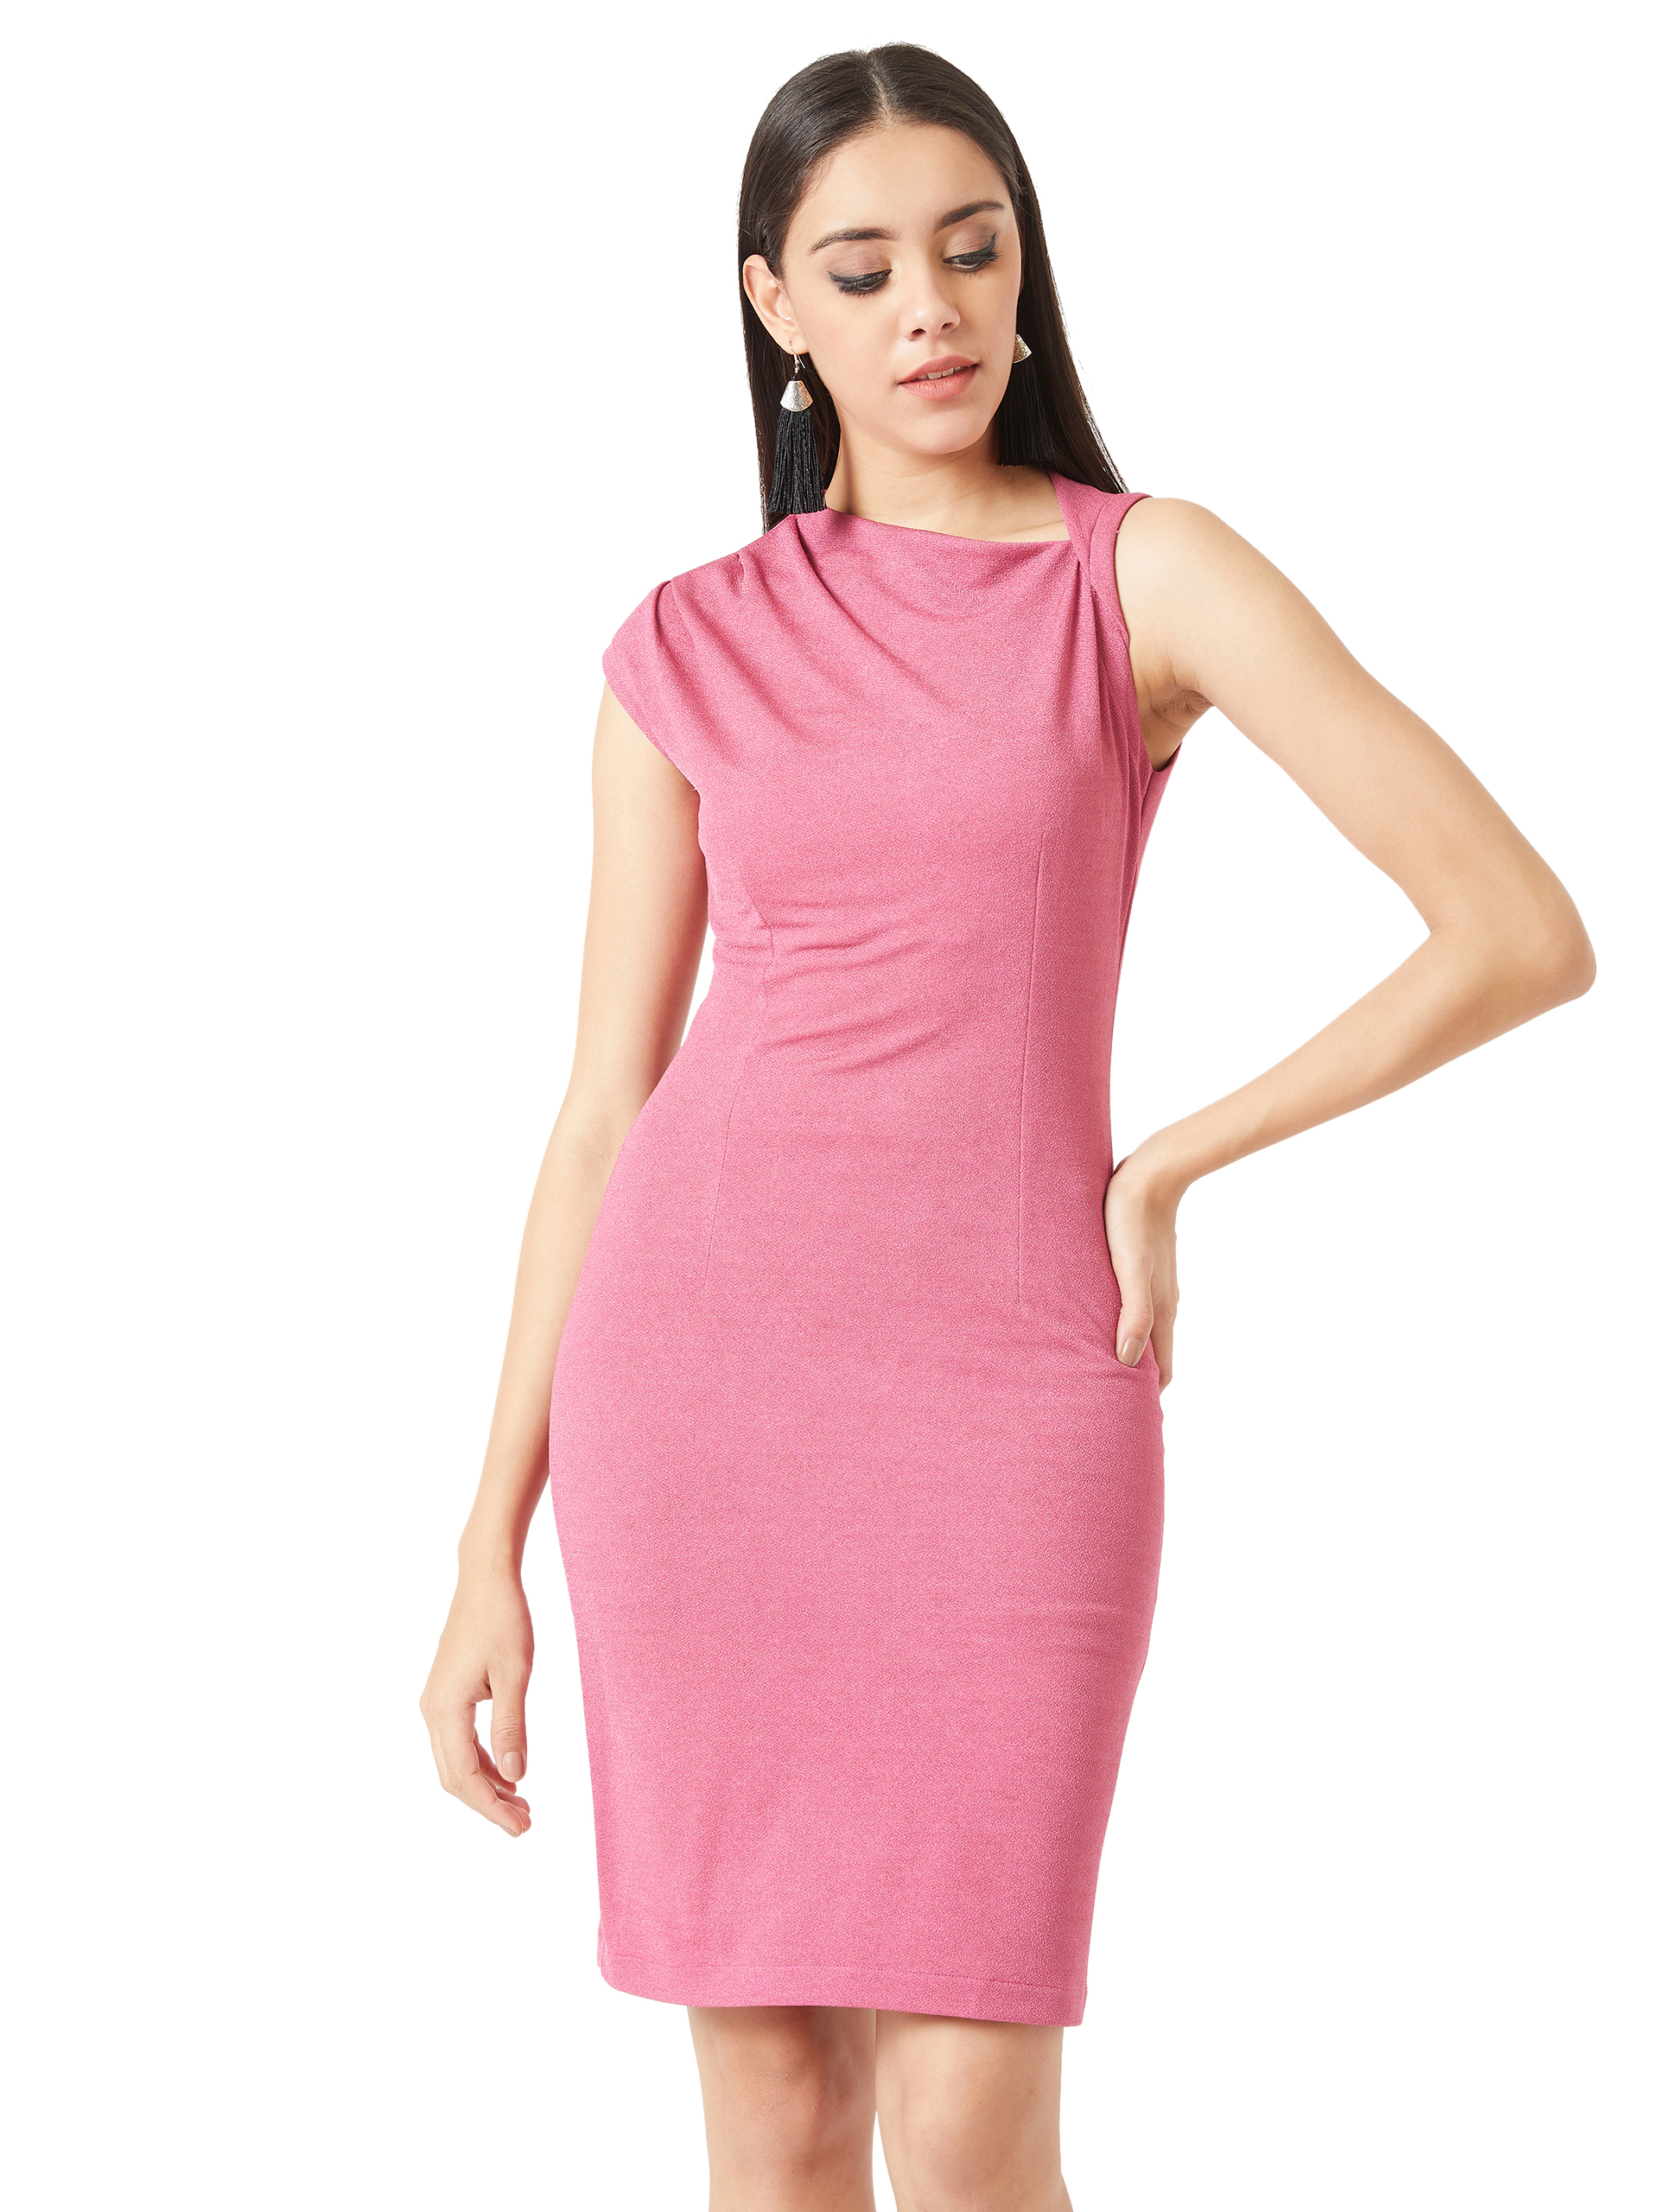 MISS CHASE |  Pink V-Neck Sleeveless Solid Pleated Bodycon Mini Dress